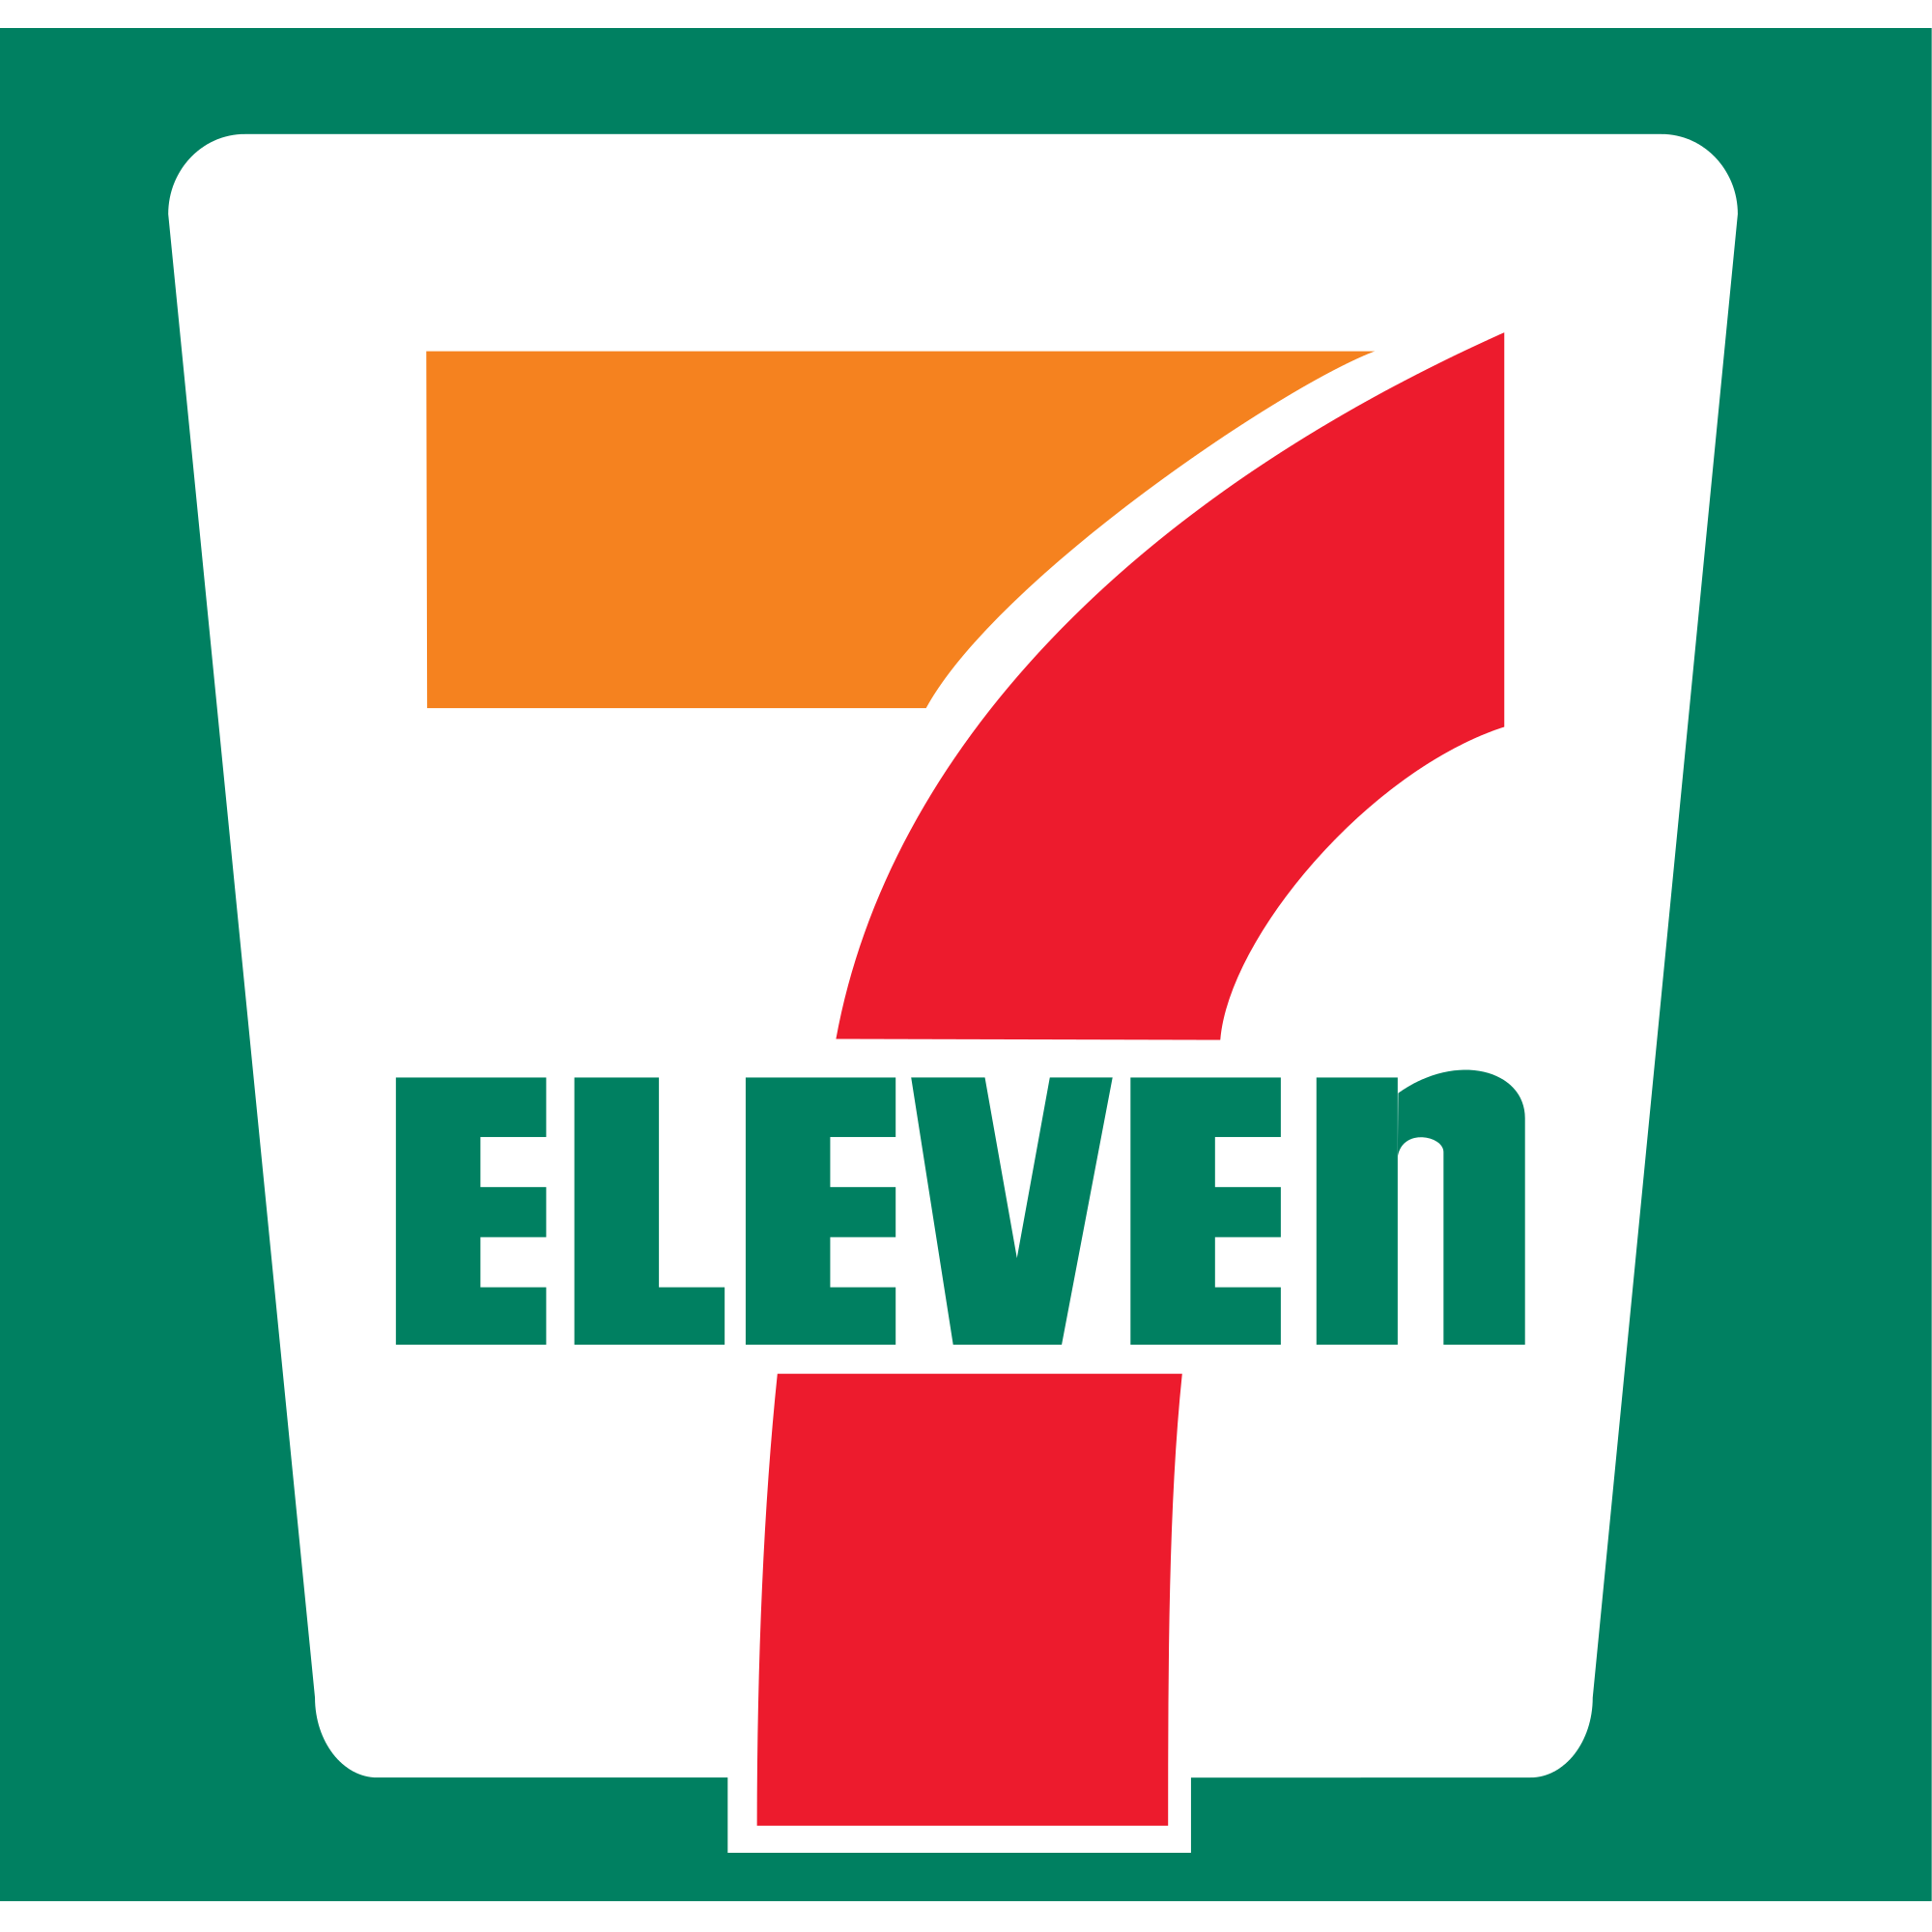 7-Eleven - Hudson, NH 03051 - (603)598-4260 | ShowMeLocal.com